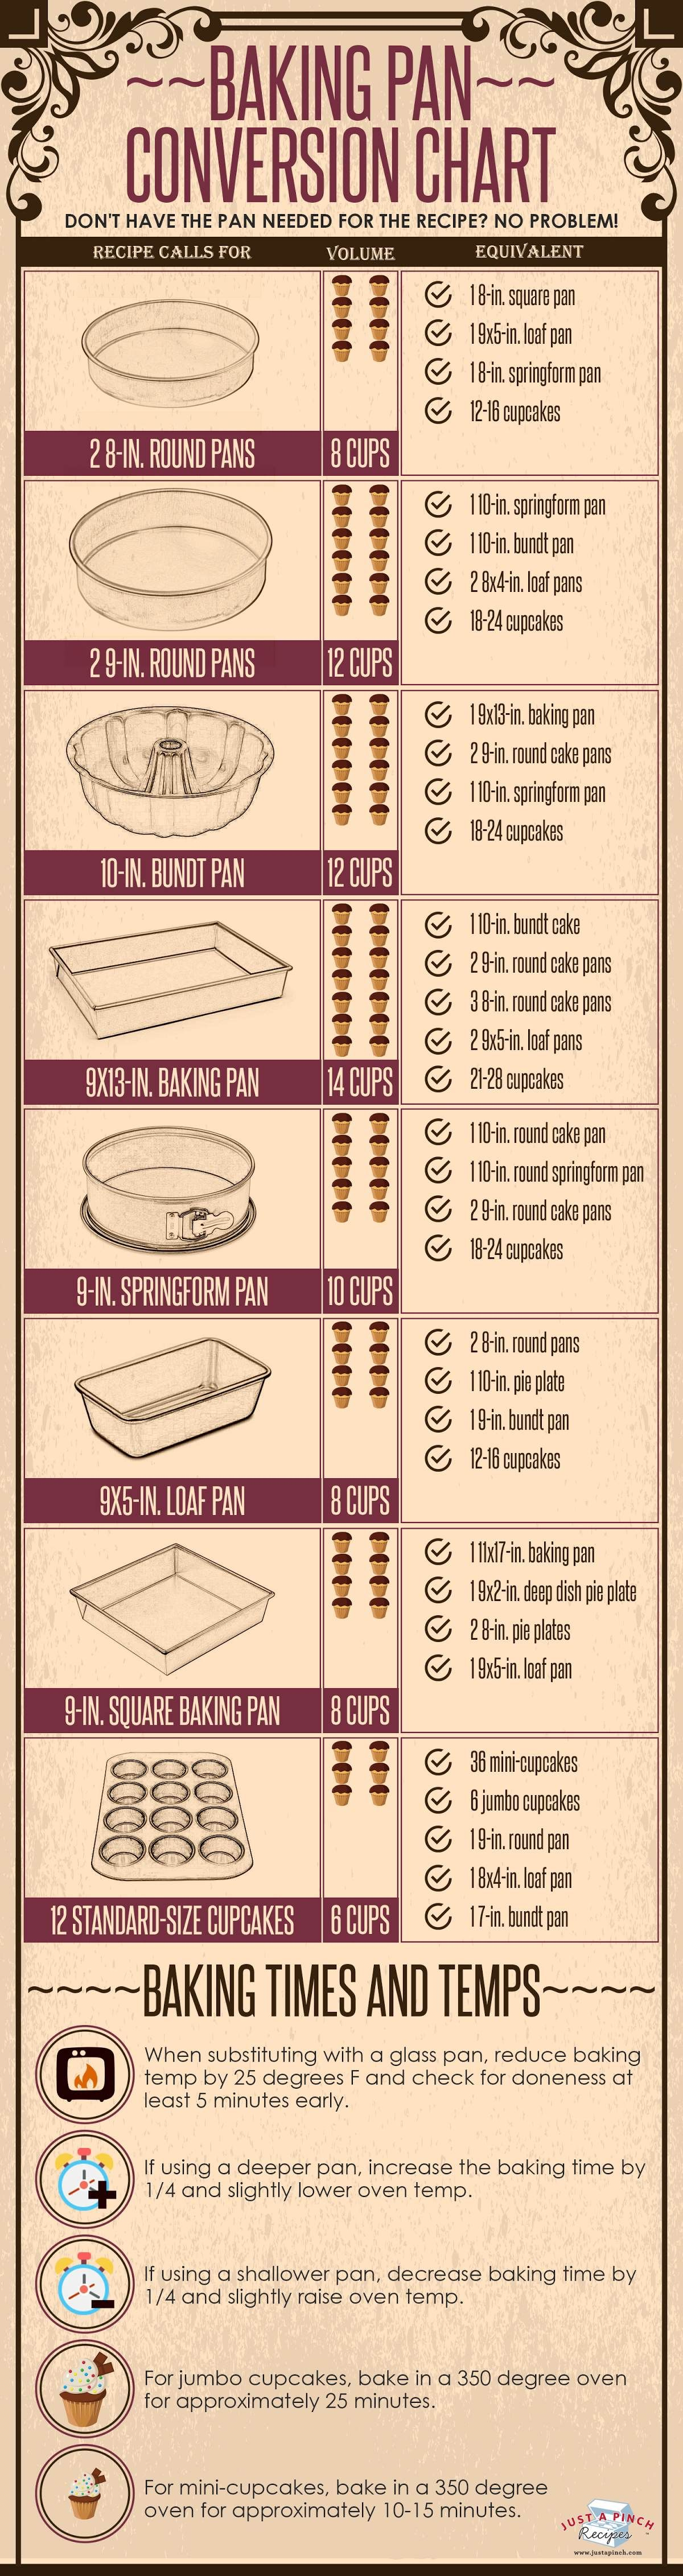 Baking pan conversion chart recipes pinterest baking pans baking pan conversion chart busy moms healthy moms health tips healthy food health and fitness geenschuldenfo Choice Image